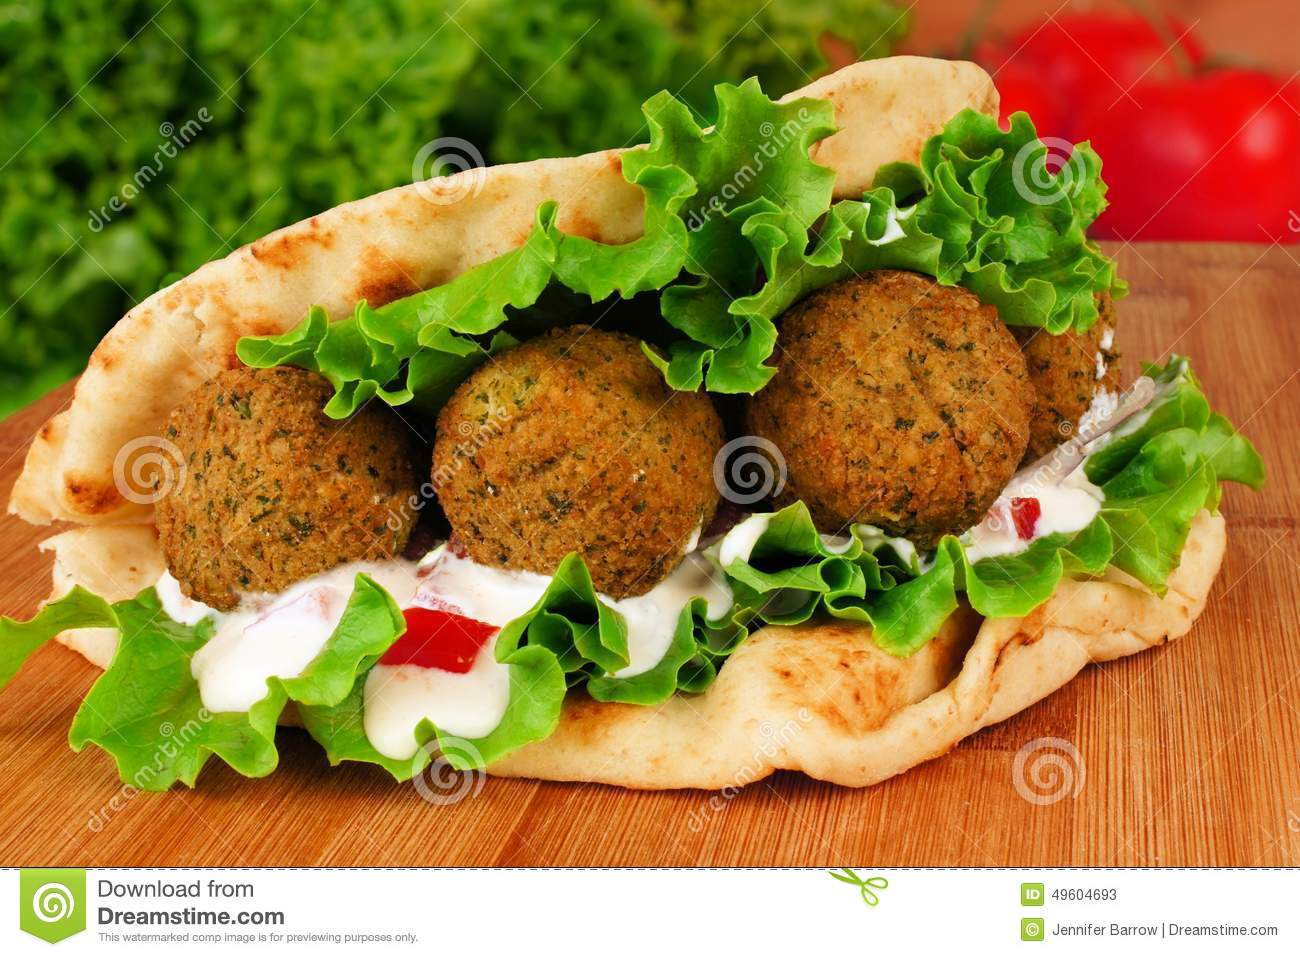 ... vegetables and tzatziki sauce in pita bread close-up on wooden table